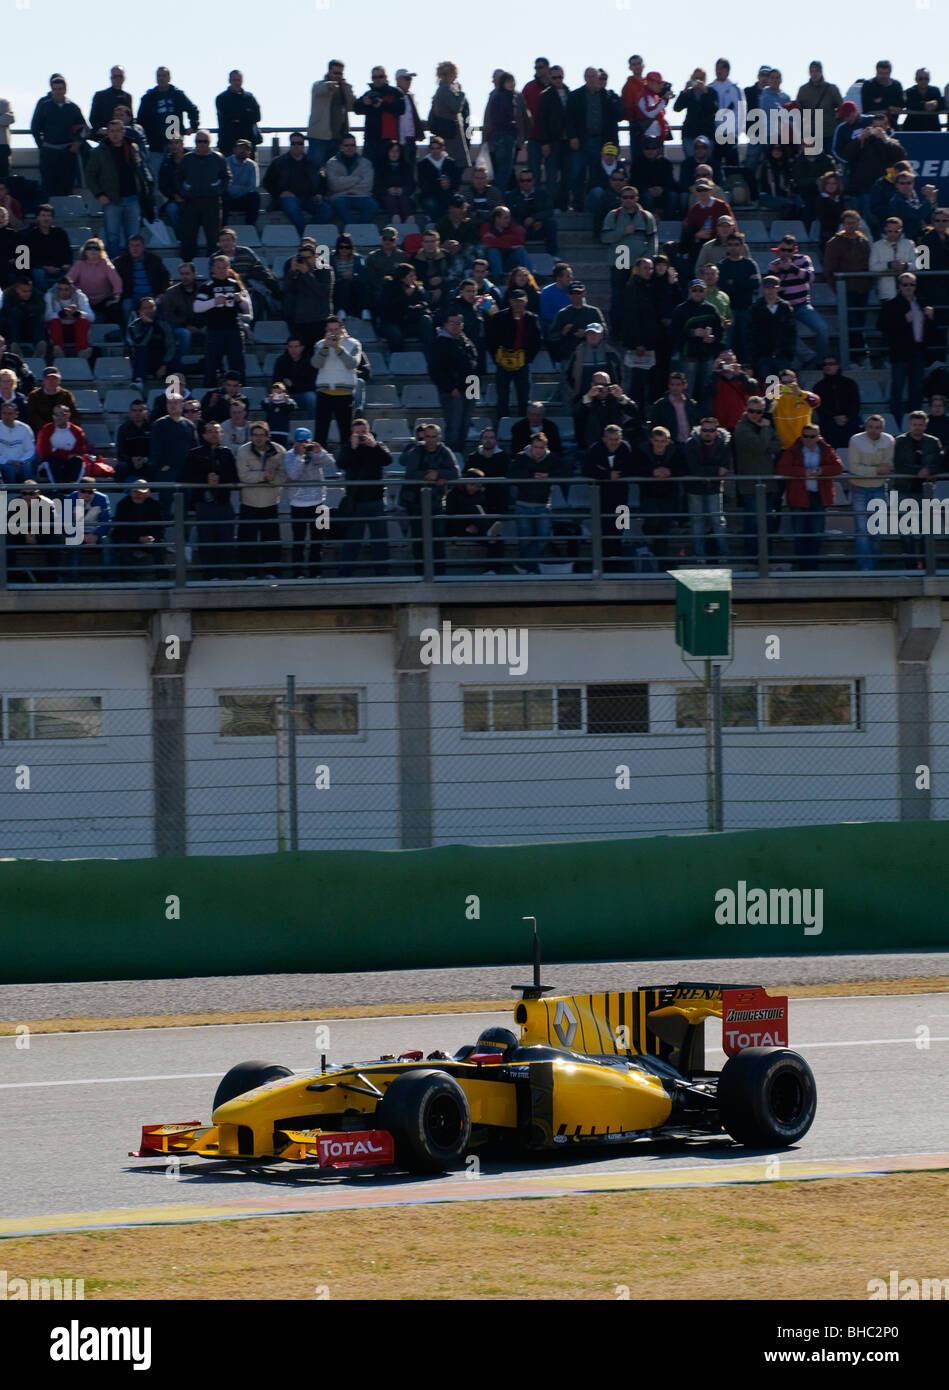 Robert KUBICA (POL) driving the Renault R30 Formula One racing car in February 2010 - Stock Image